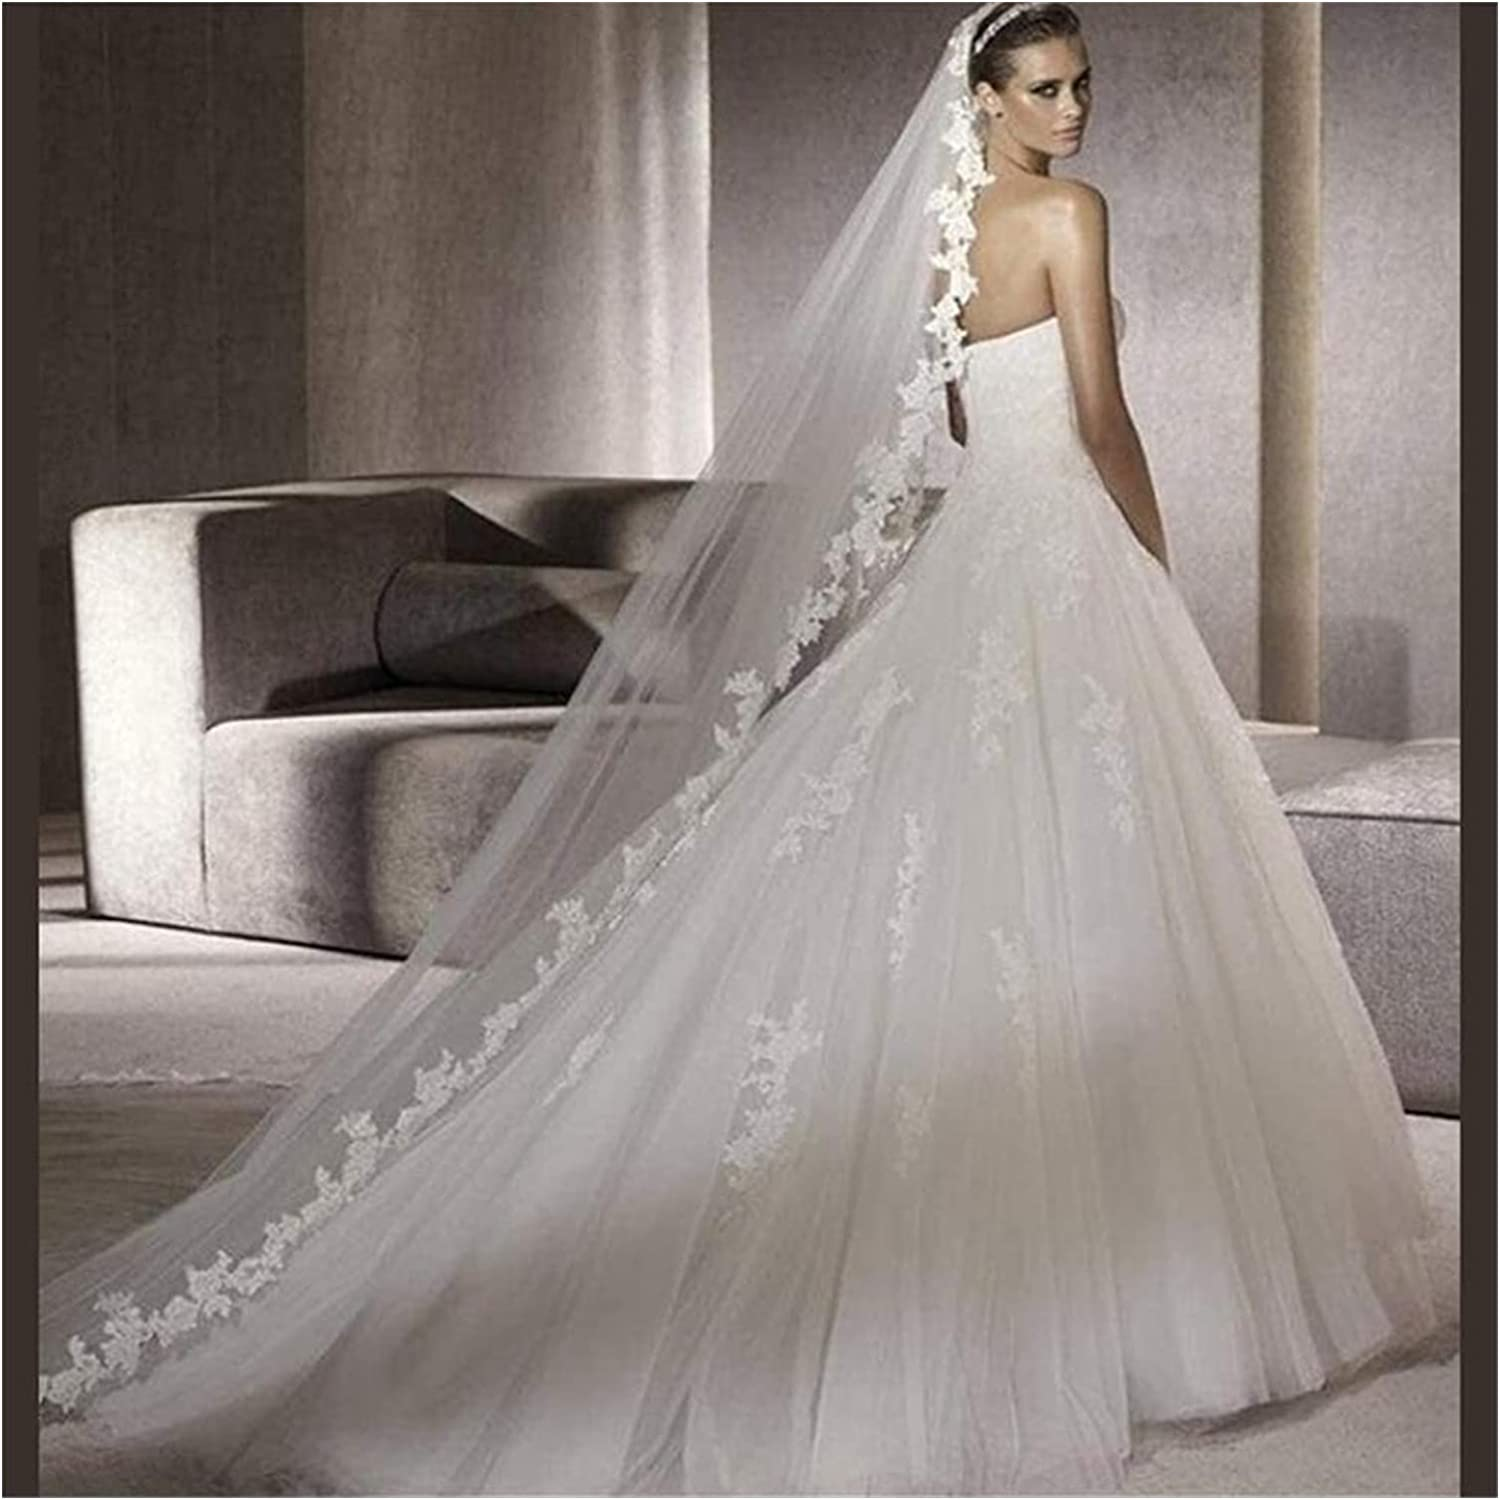 HAQTXI 1T Long Veil Bridal Veil, Application Lace Edge Wedding Veil Soft Tulle Simple Party Cathedral 3 Meters Accessories (Color : Ivory)